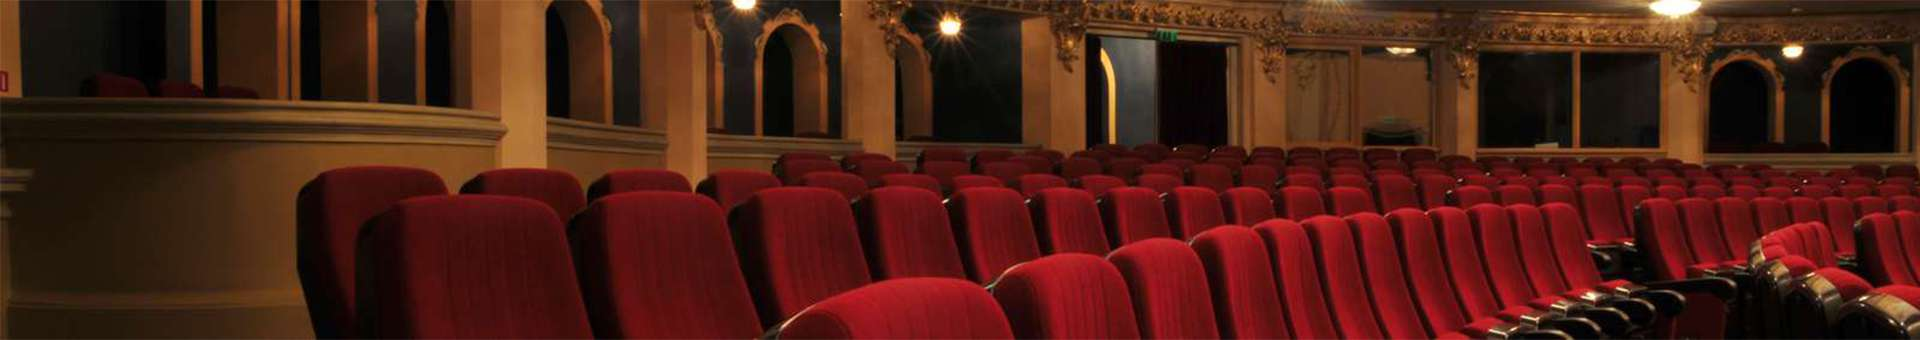 Search Whois information of domain names  .theater